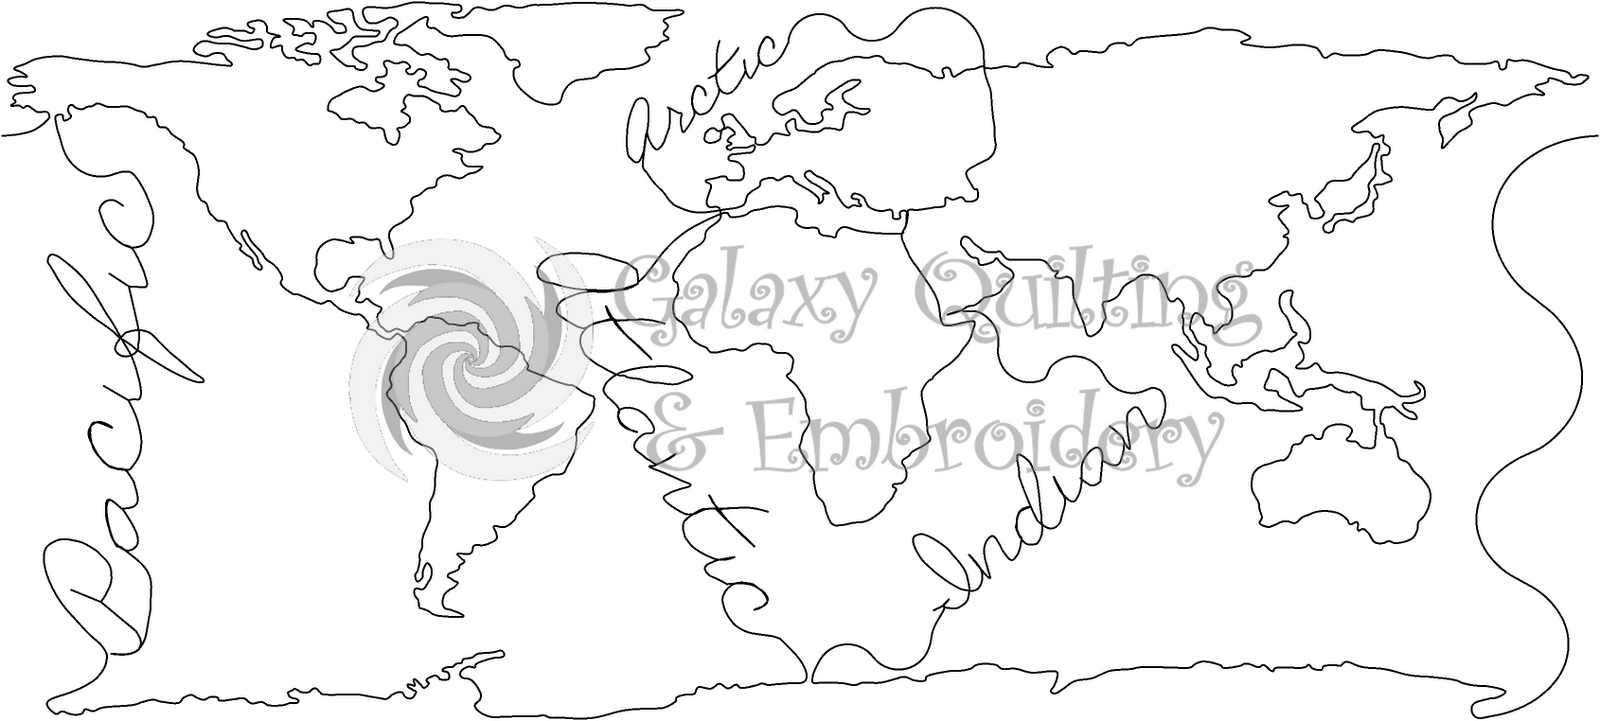 Map Coloring Pages For Kindergarten : On world oceans map coloring page for kindergarten